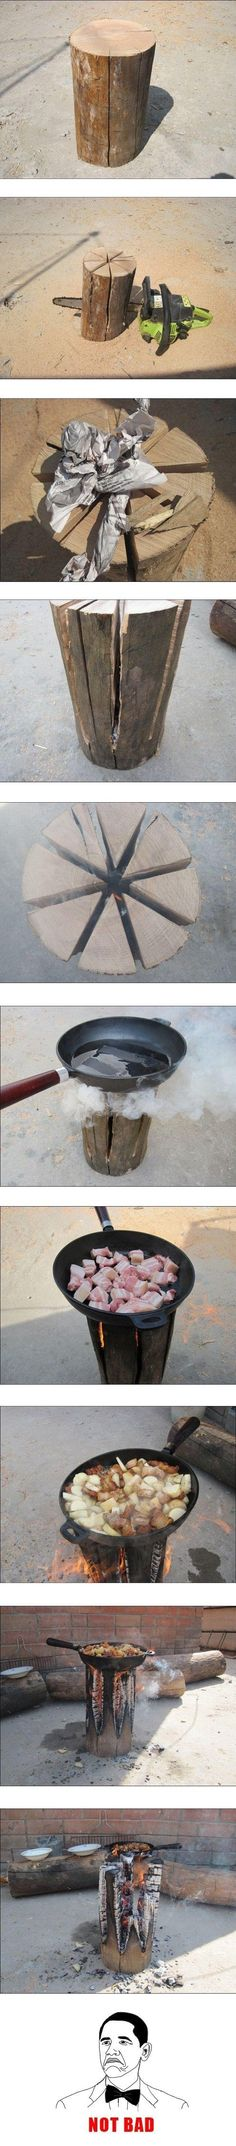 Cooking outside... #funny #lol #humor